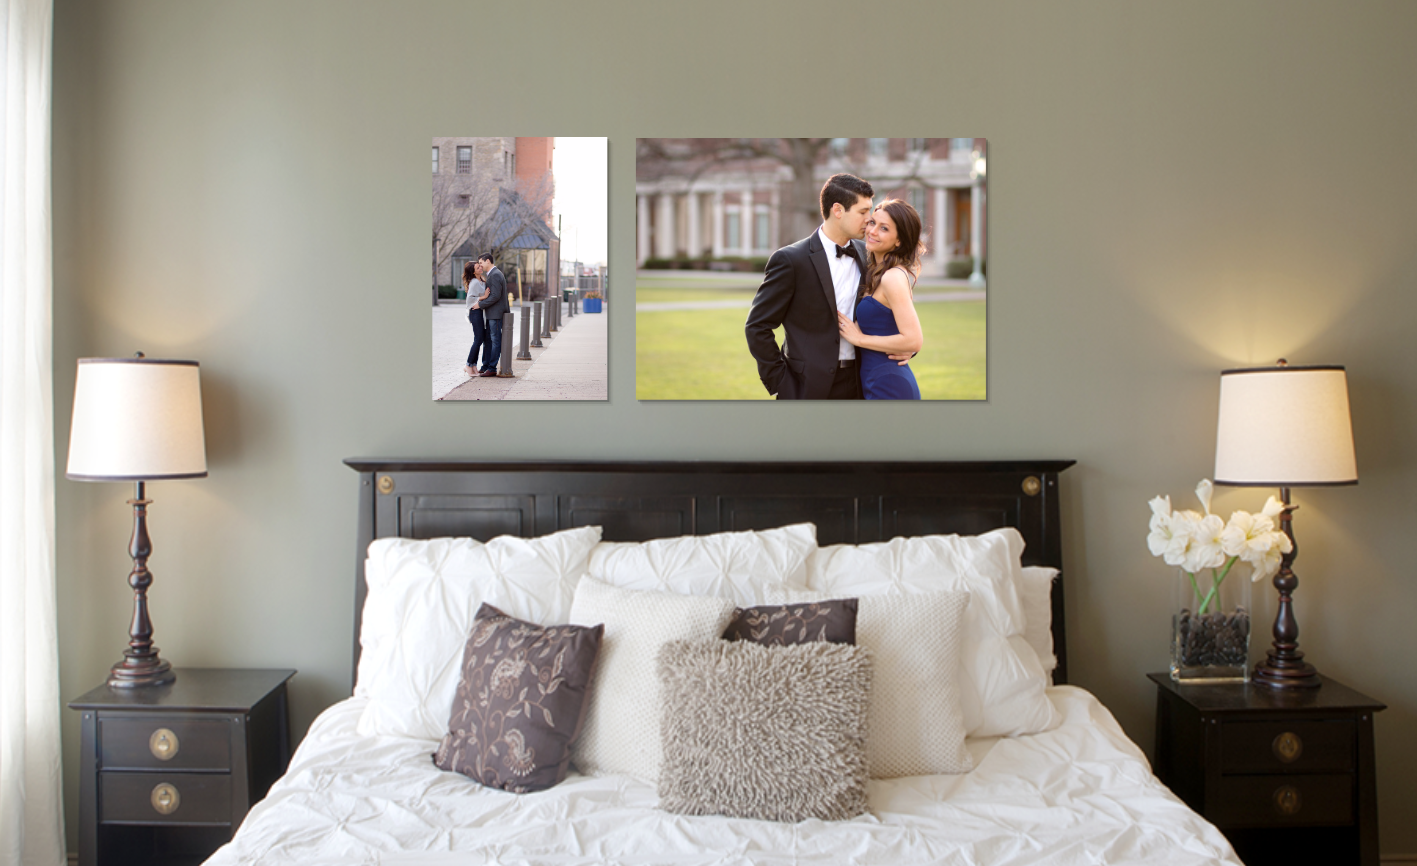 engaged-couple-bedroom-canvas-print-duo-rochester-ny.png